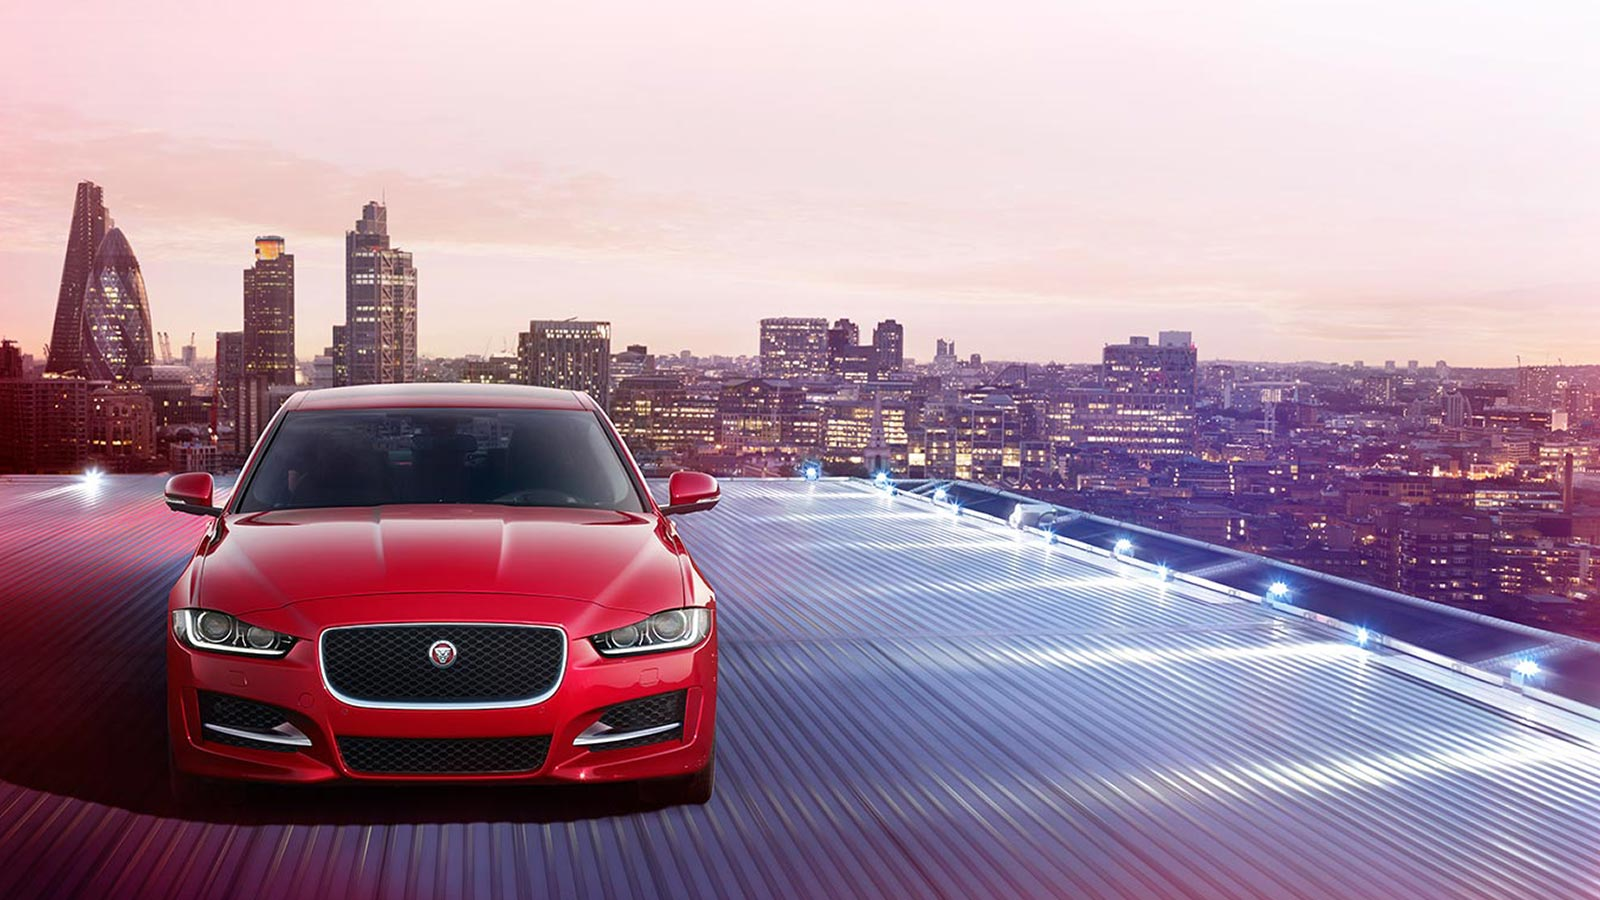 Front view of Jaguar XE.